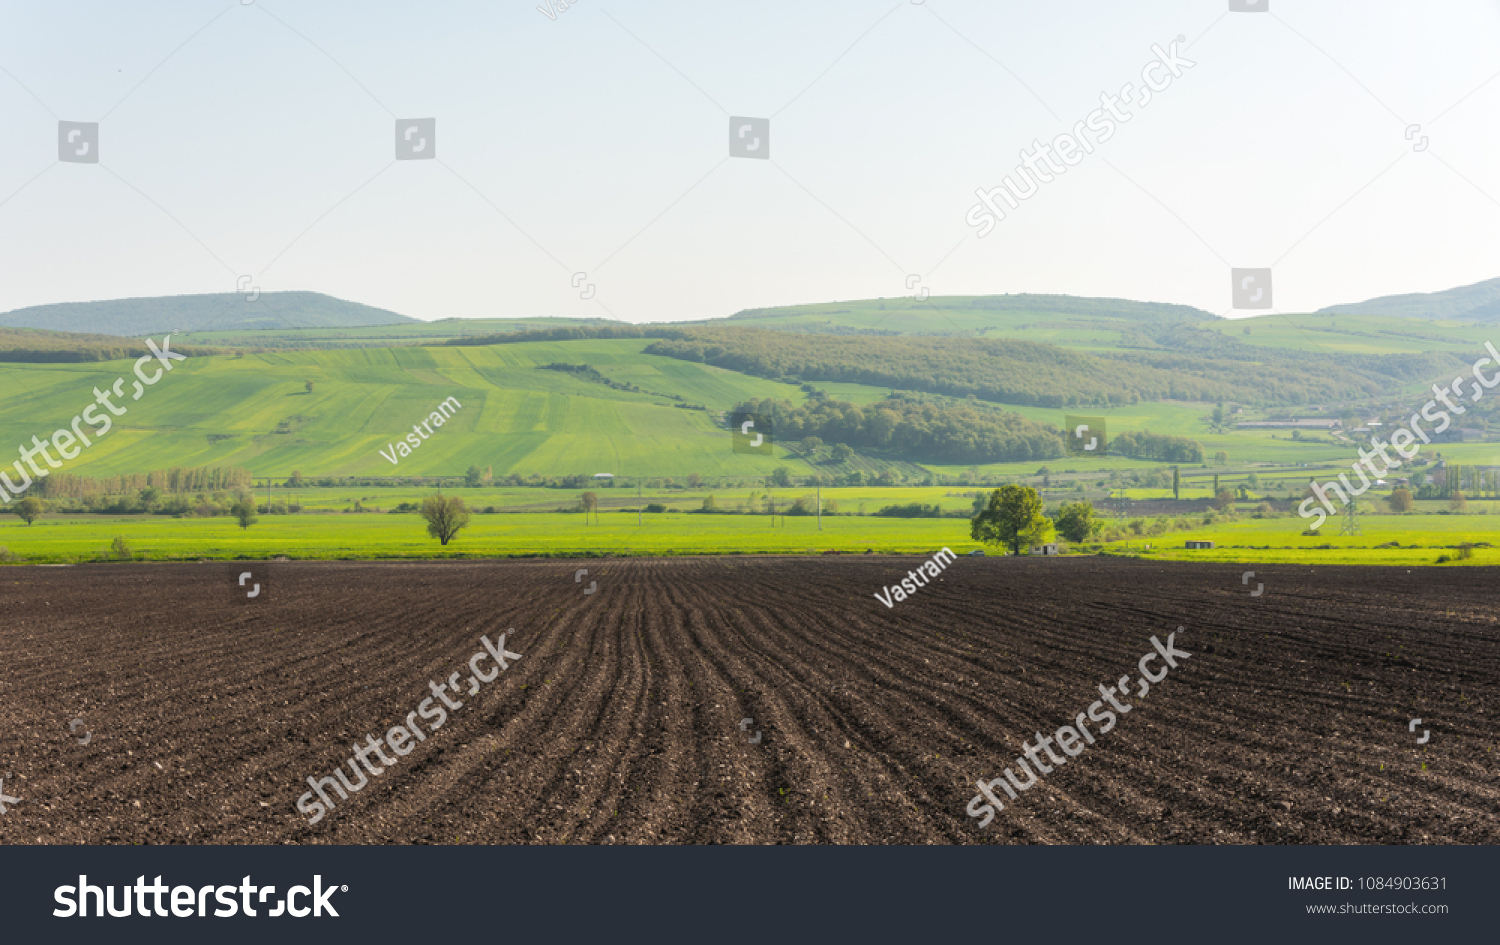 Plowed farmlands, arable fields